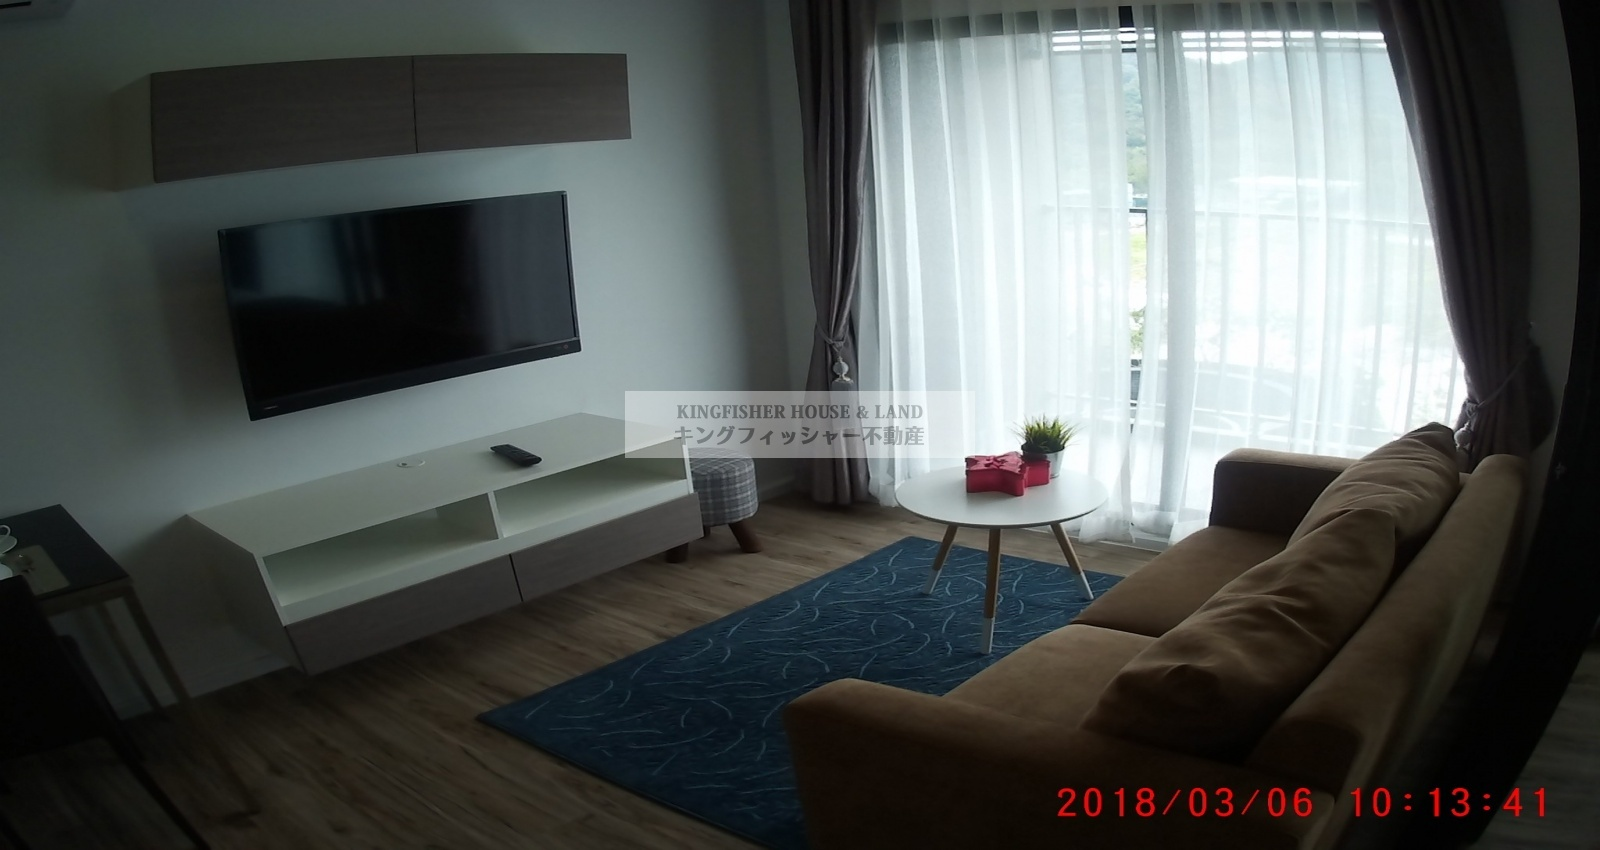 1 Bedrooms, Condominium, For Rent, 1 Bathrooms, Listing ID 1214, Sriracha, Chonburi, Thailand, 20110,